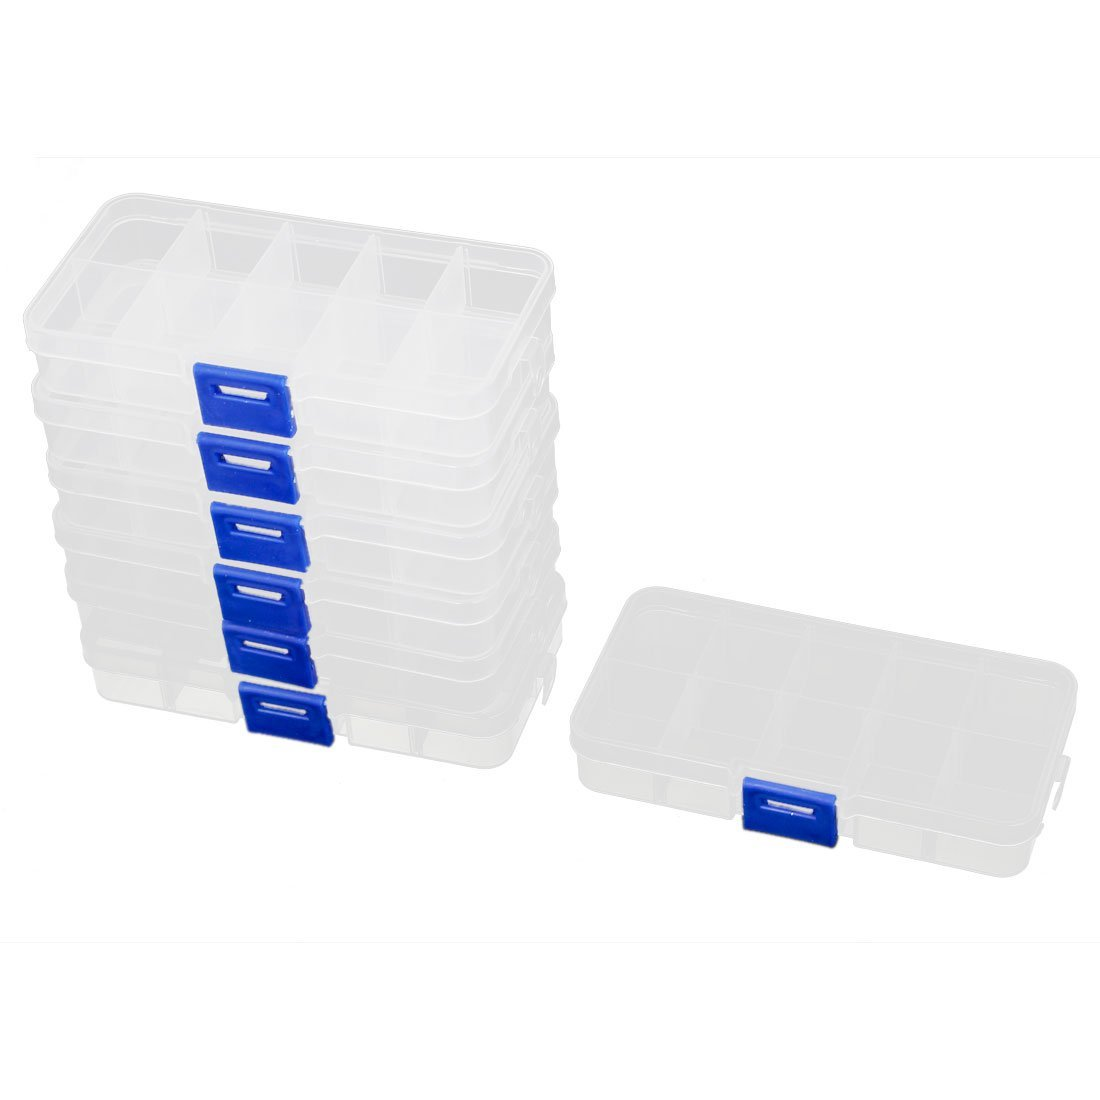 GSFY-7pcs Plastic 10 Sections Jewelry Screws Pills Holder Storage Box Clear(China (Mainland))